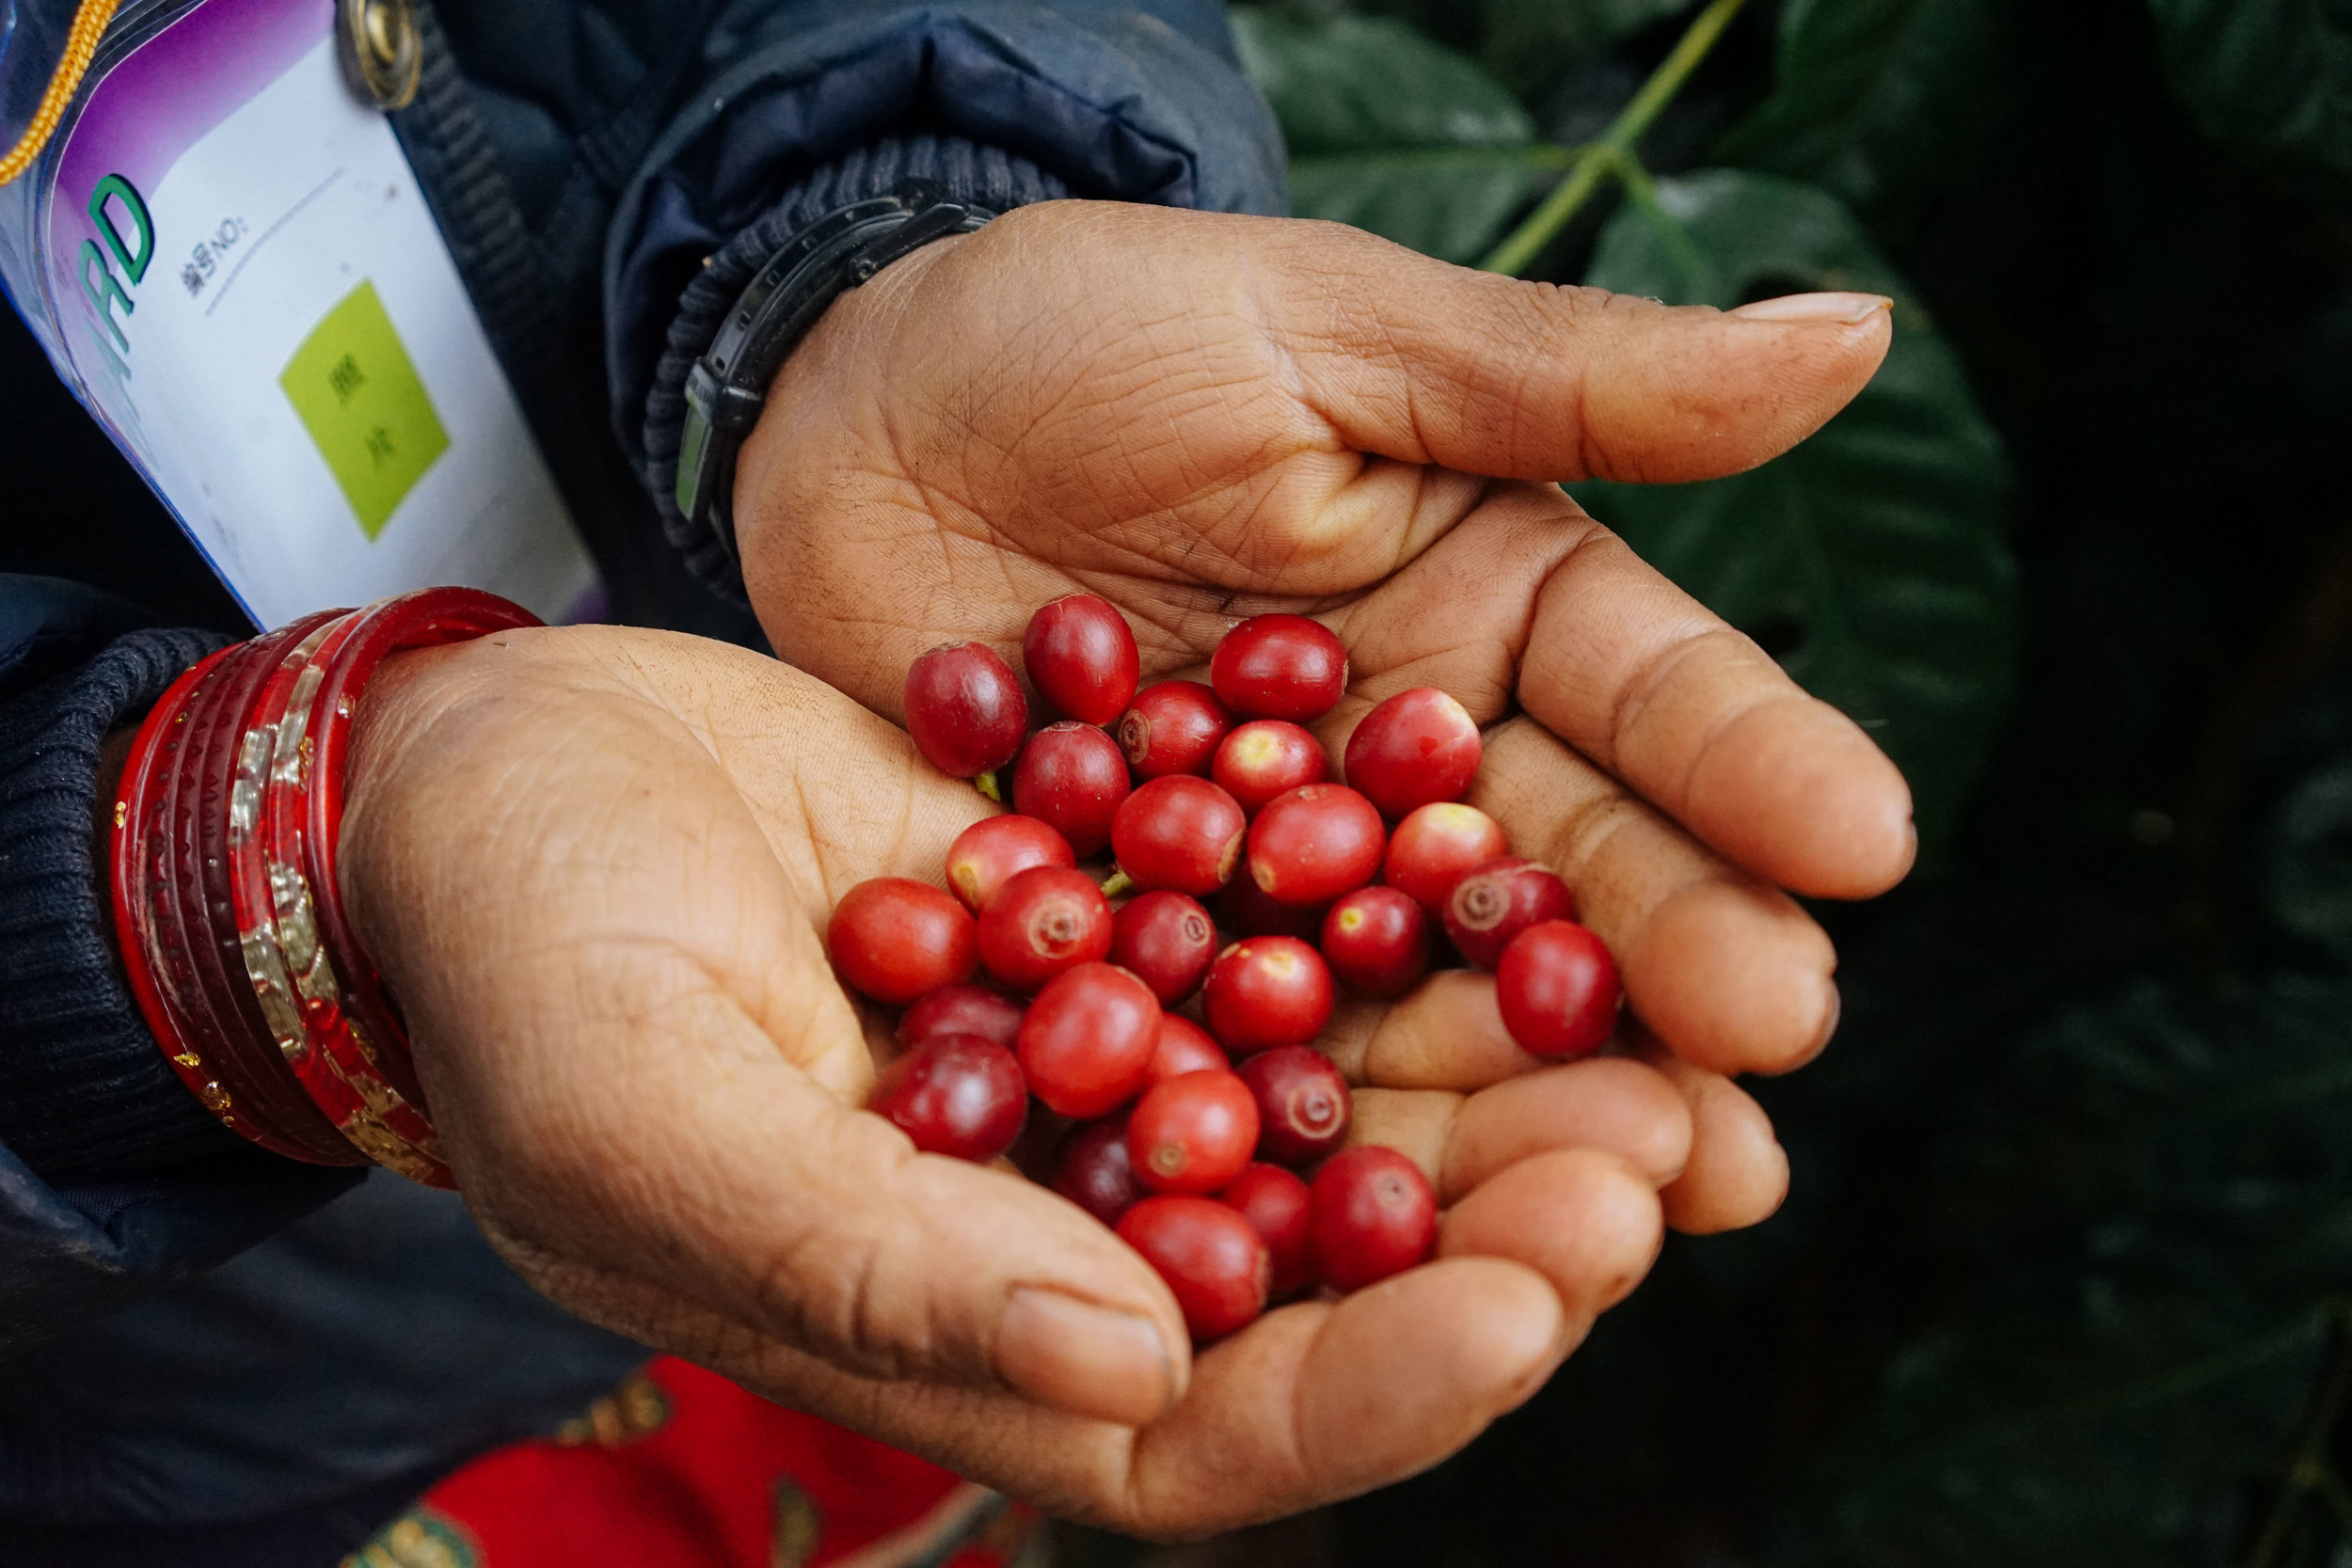 Juicy red coffee cherries, picked and ready for pulping.